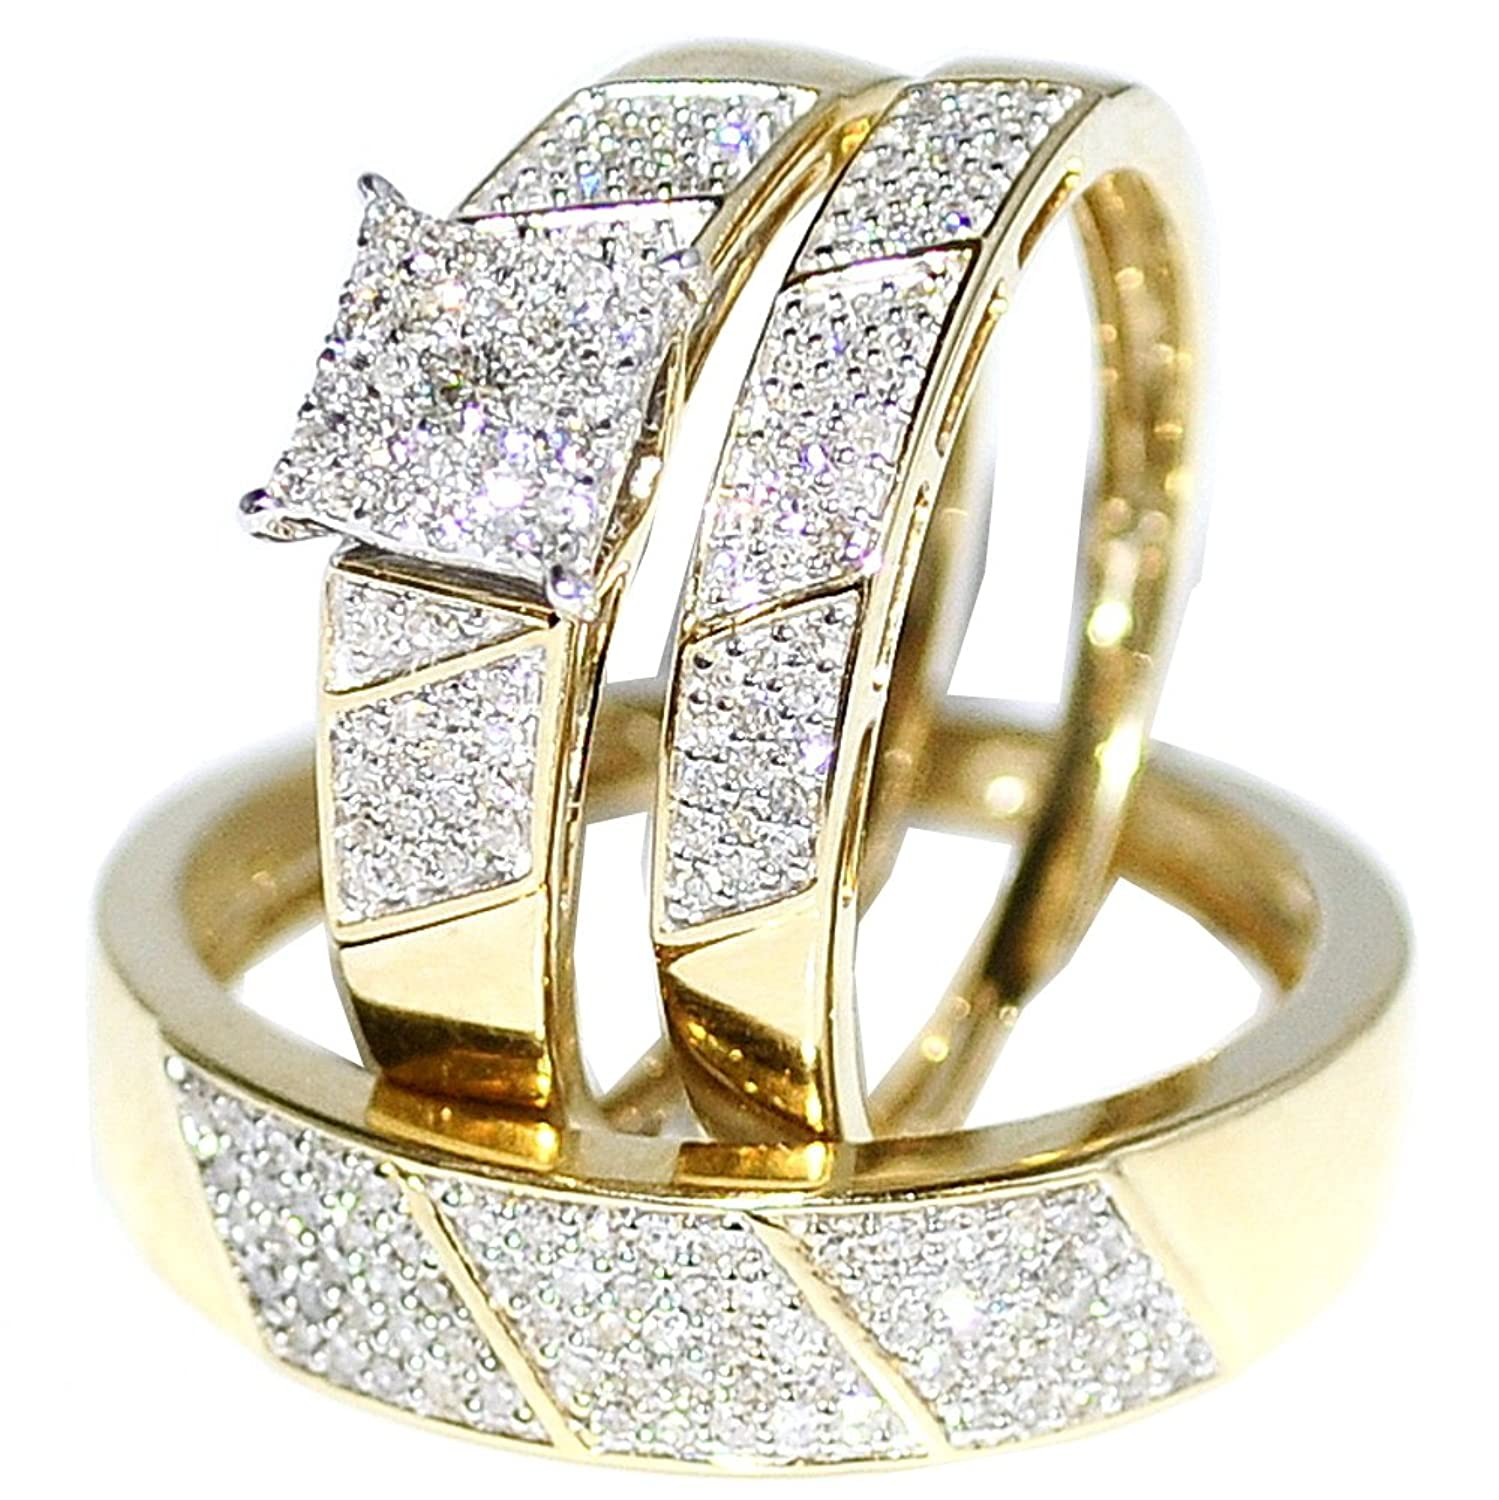 rings white and gold beaverbrooks p context ring rose jewellery large diamond